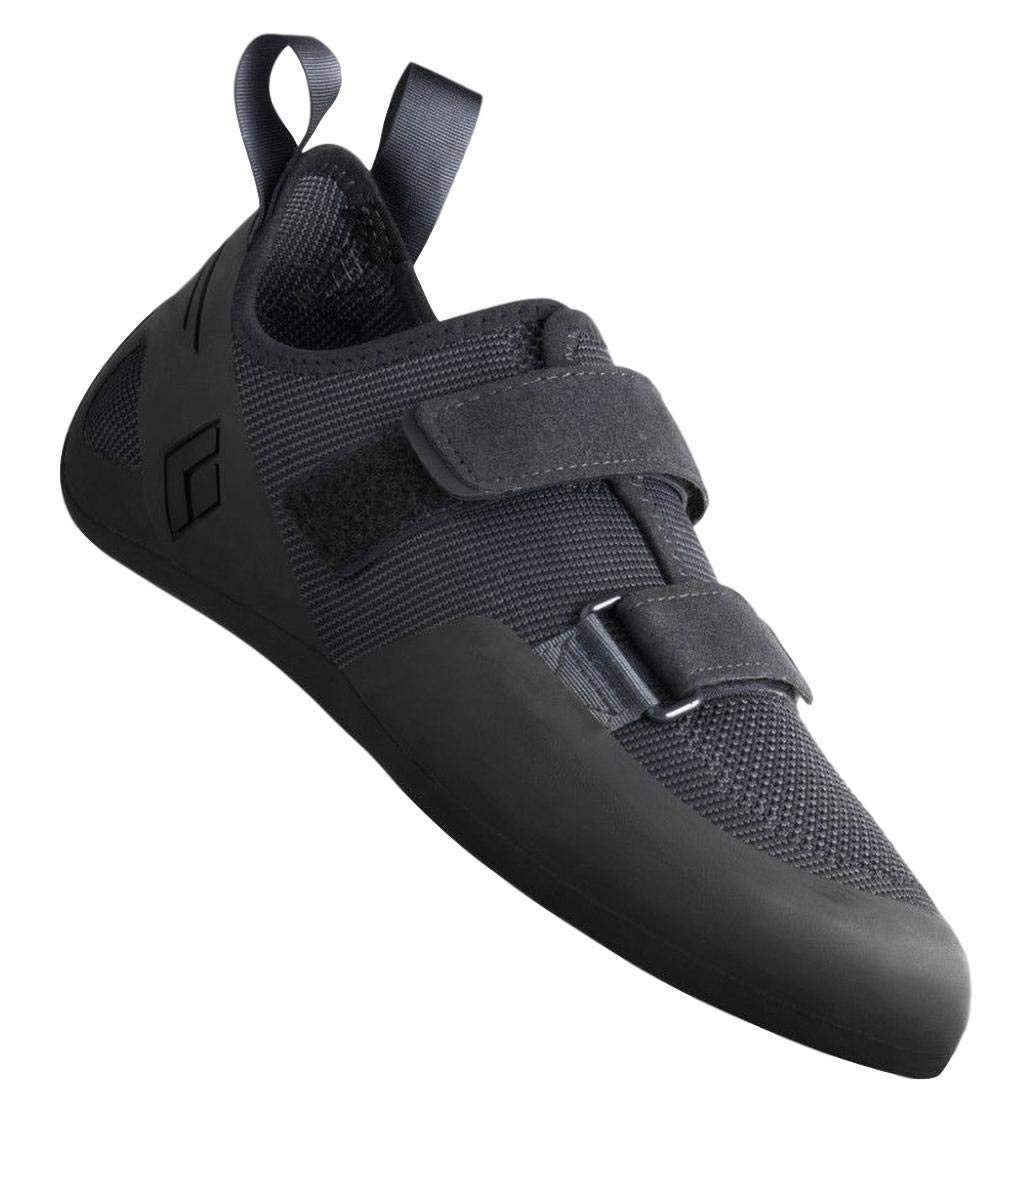 Black Diamond Momentum Vegan Climbing Shoe - Men's Carbon 13 by Black Diamond